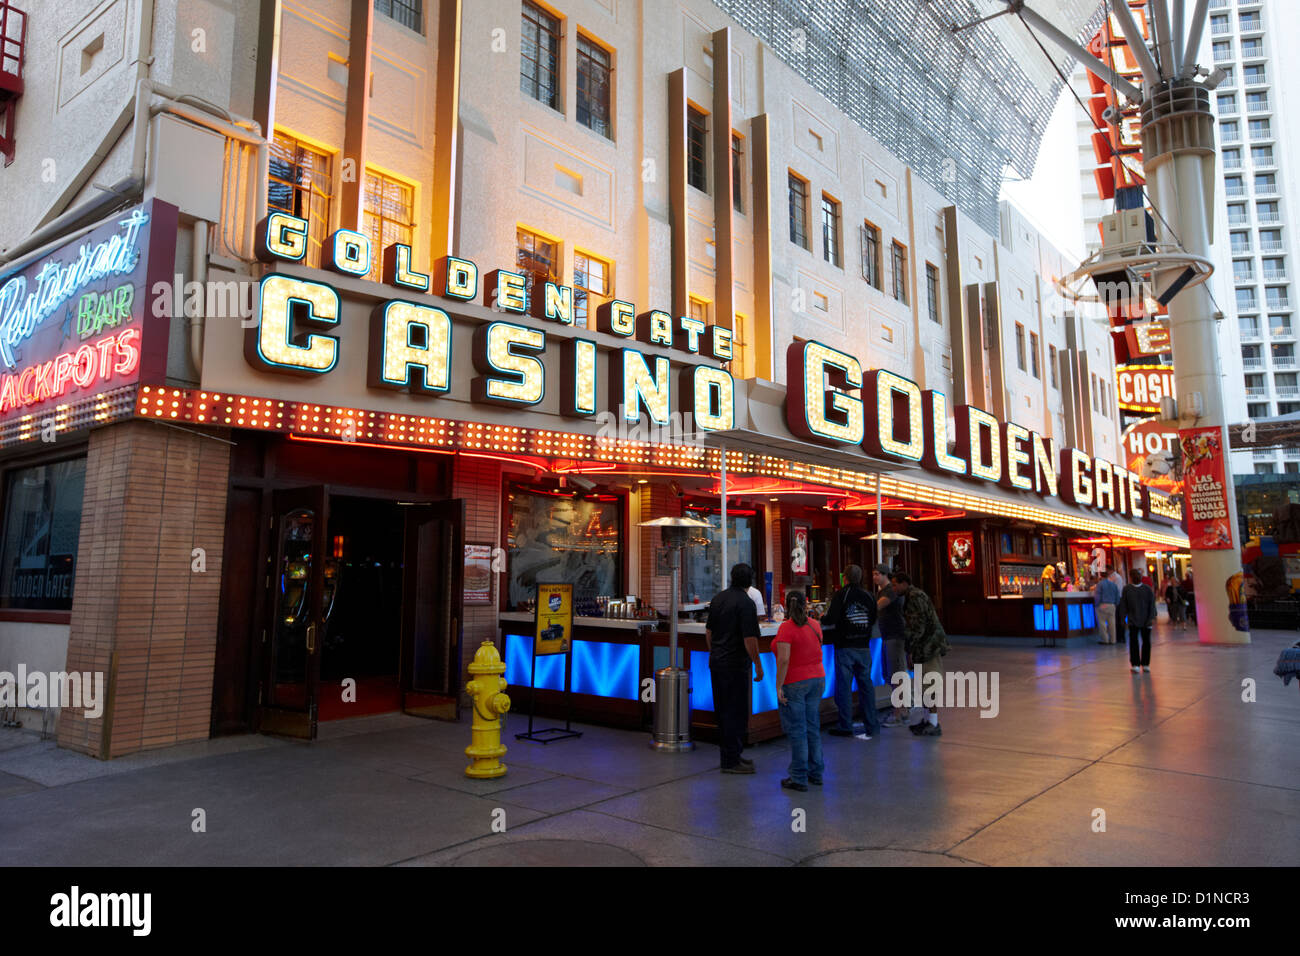 golden gate casino